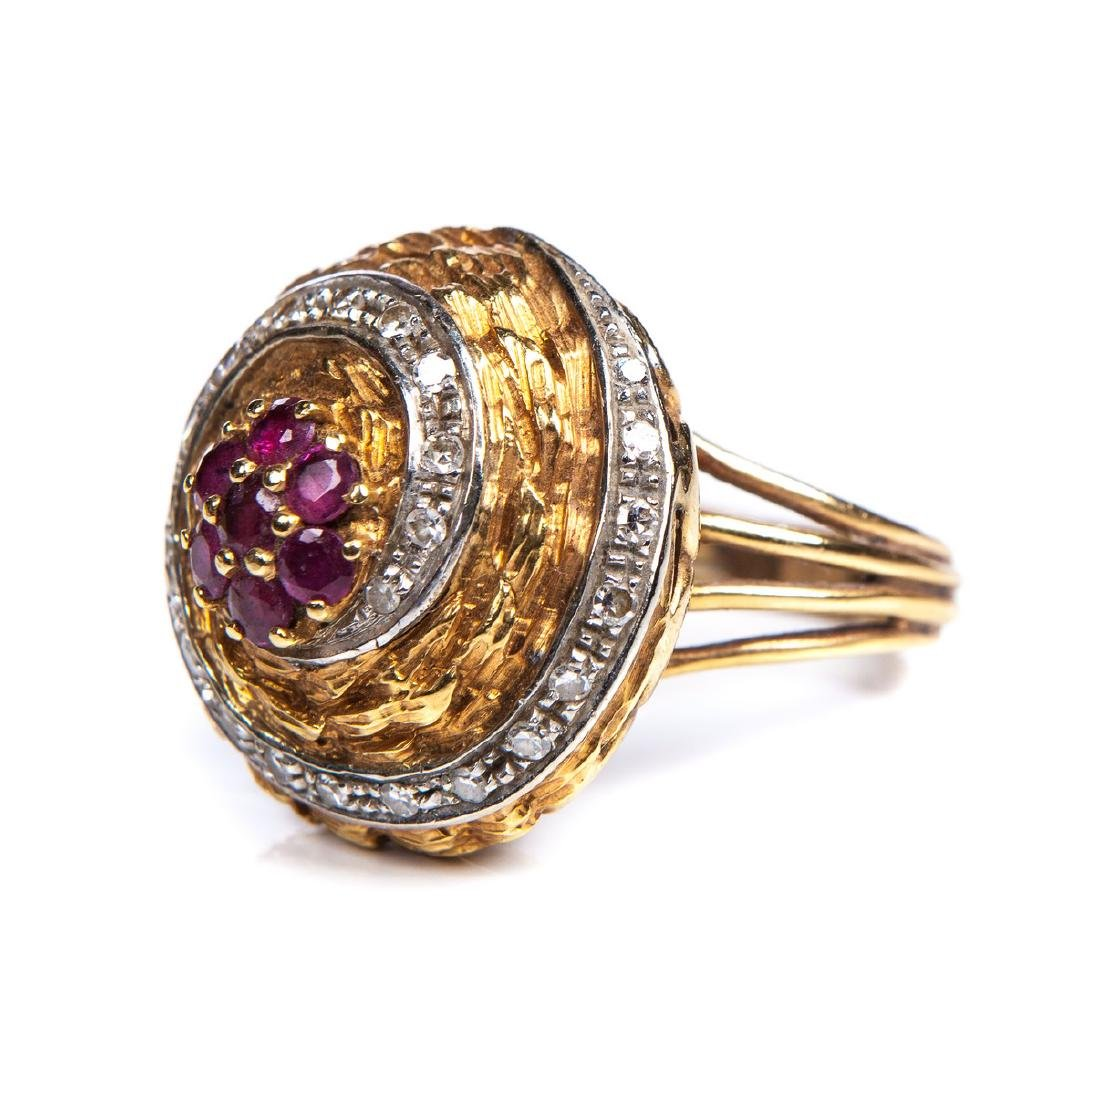 DIAMOND AND RUBY 18 KT YELLOW GOLD RING - 3